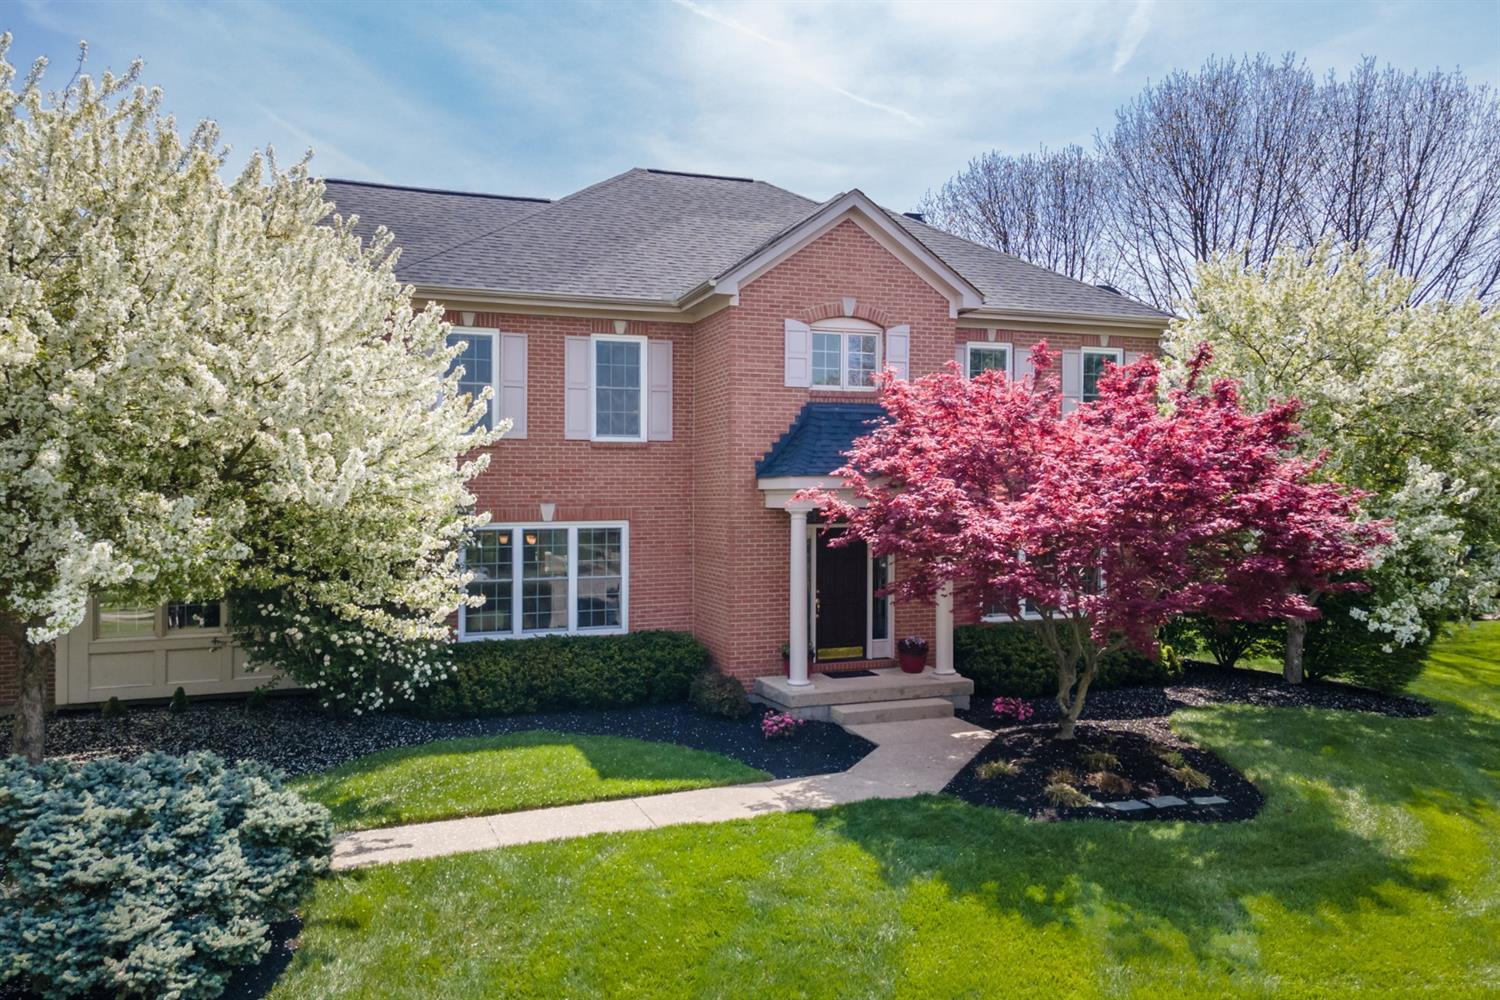 8581 Chaucer Place, Montgomery, Ohio 45249, 4 Bedrooms Bedrooms, 15 Rooms Rooms,3 BathroomsBathrooms,Single Family Residence,For Sale,Chaucer,1697190